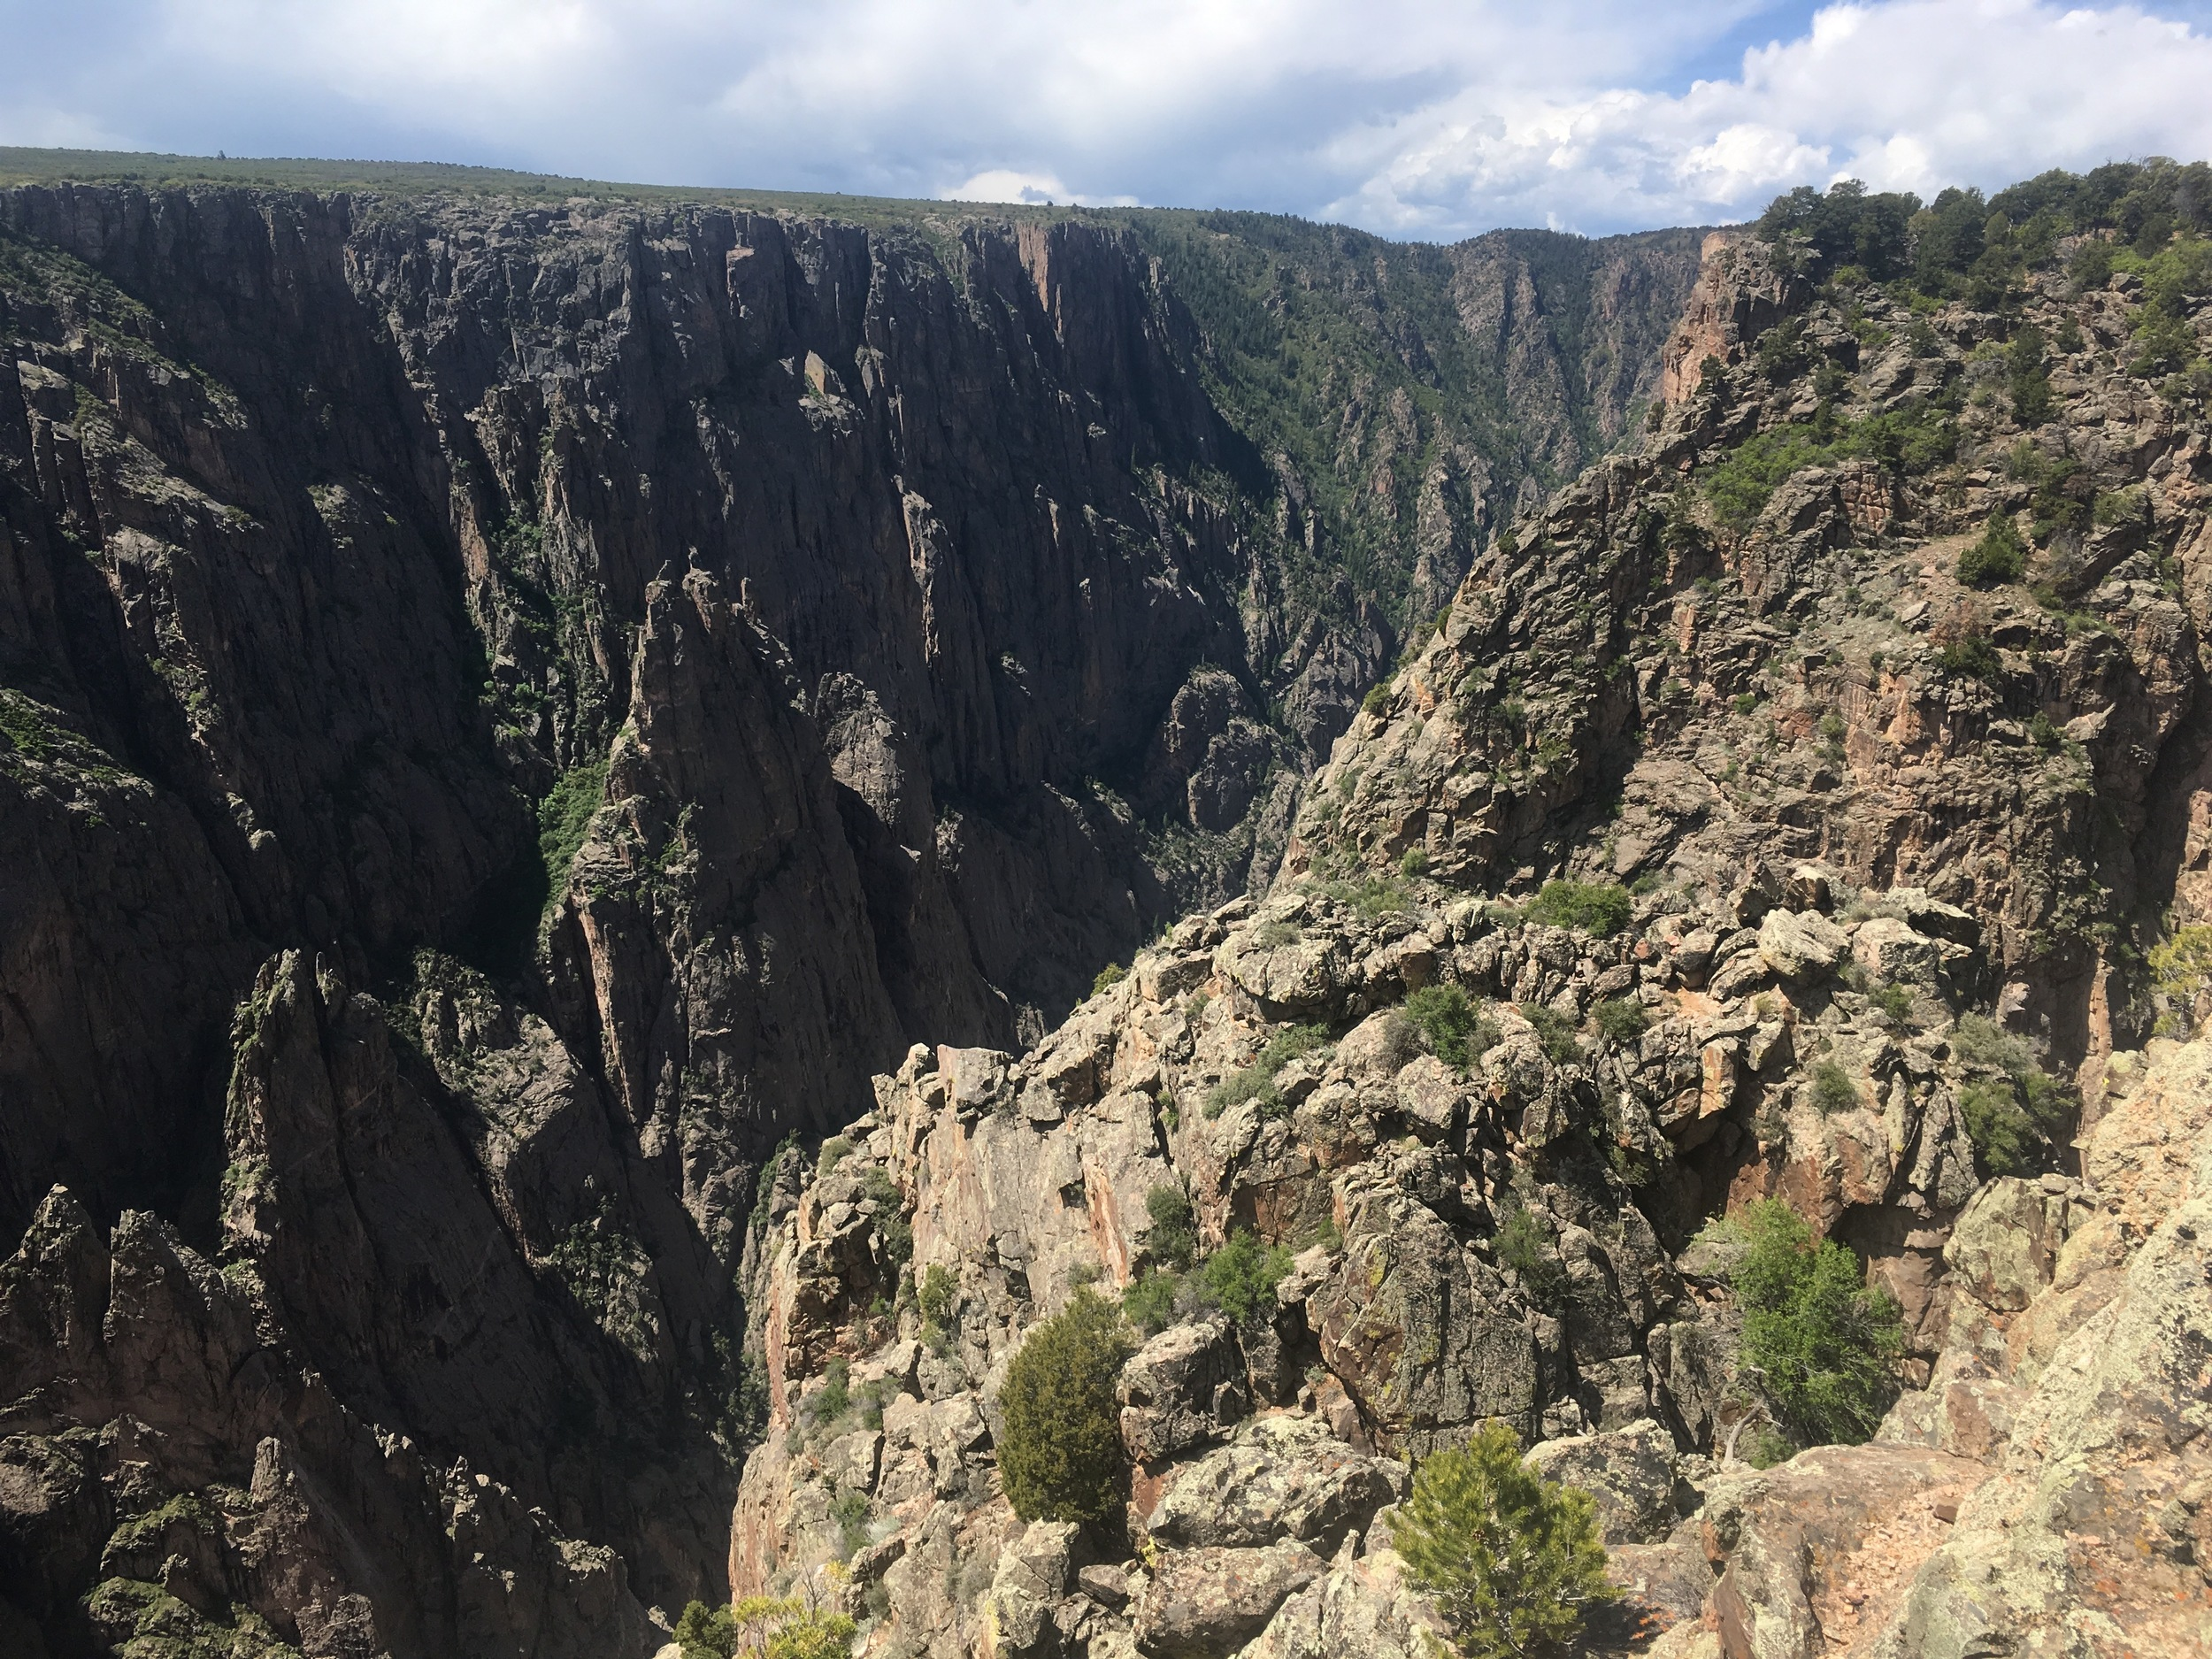 Defined by narrowness, steep drops, and the unforgiving harshness of the riverbed, the Black Canyon is a dangerous spectacle to behold.